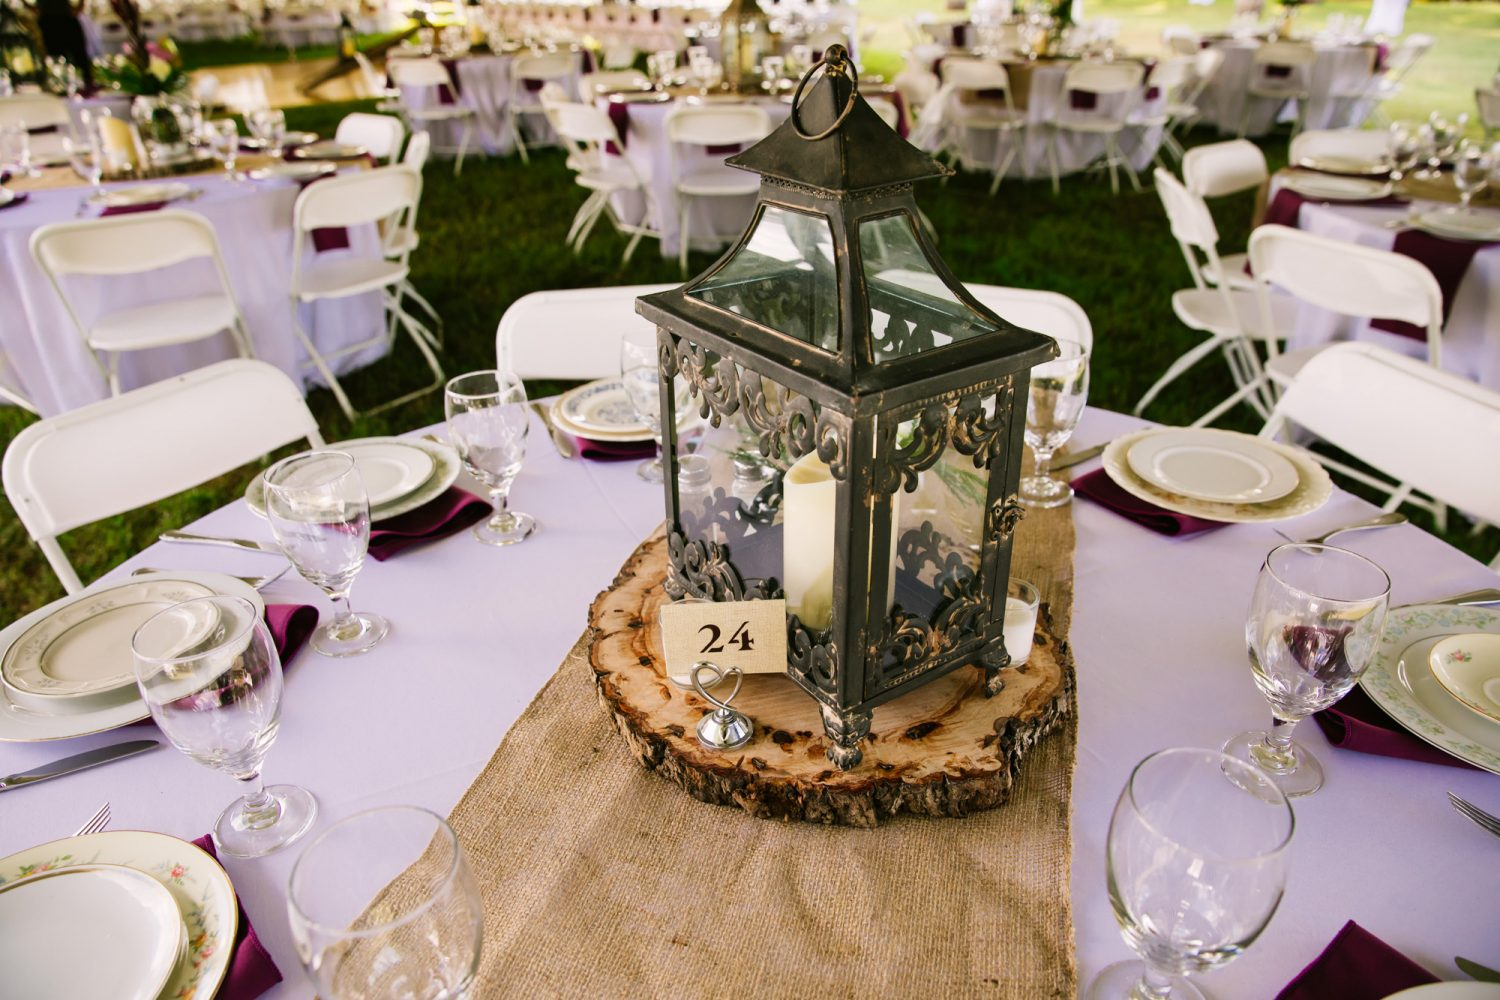 Waynesville, NC Wedding Photography | Wedding Reception Table Centerpiece